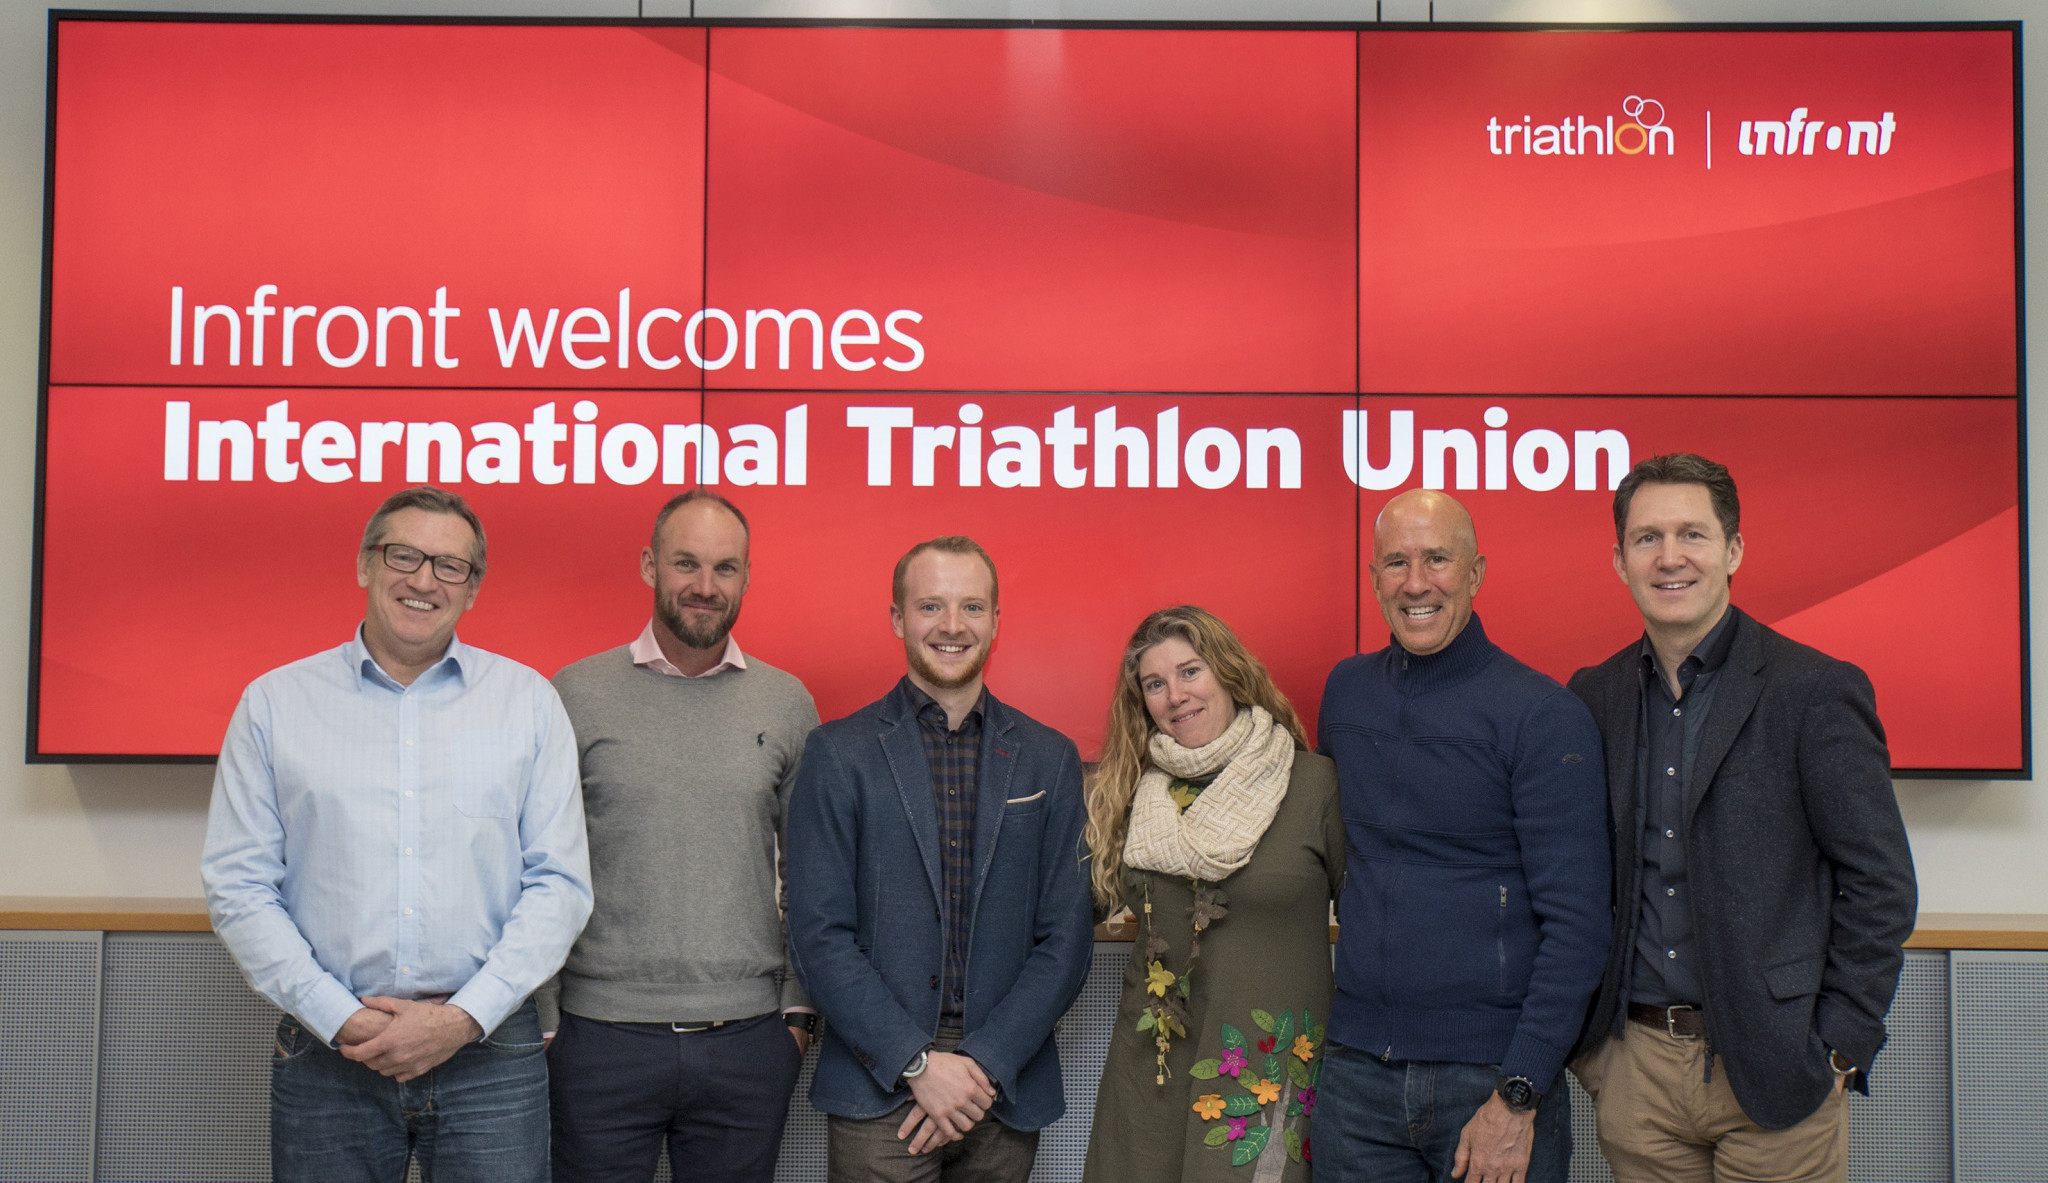 International Triathlon Union pen long-term deal with Infront